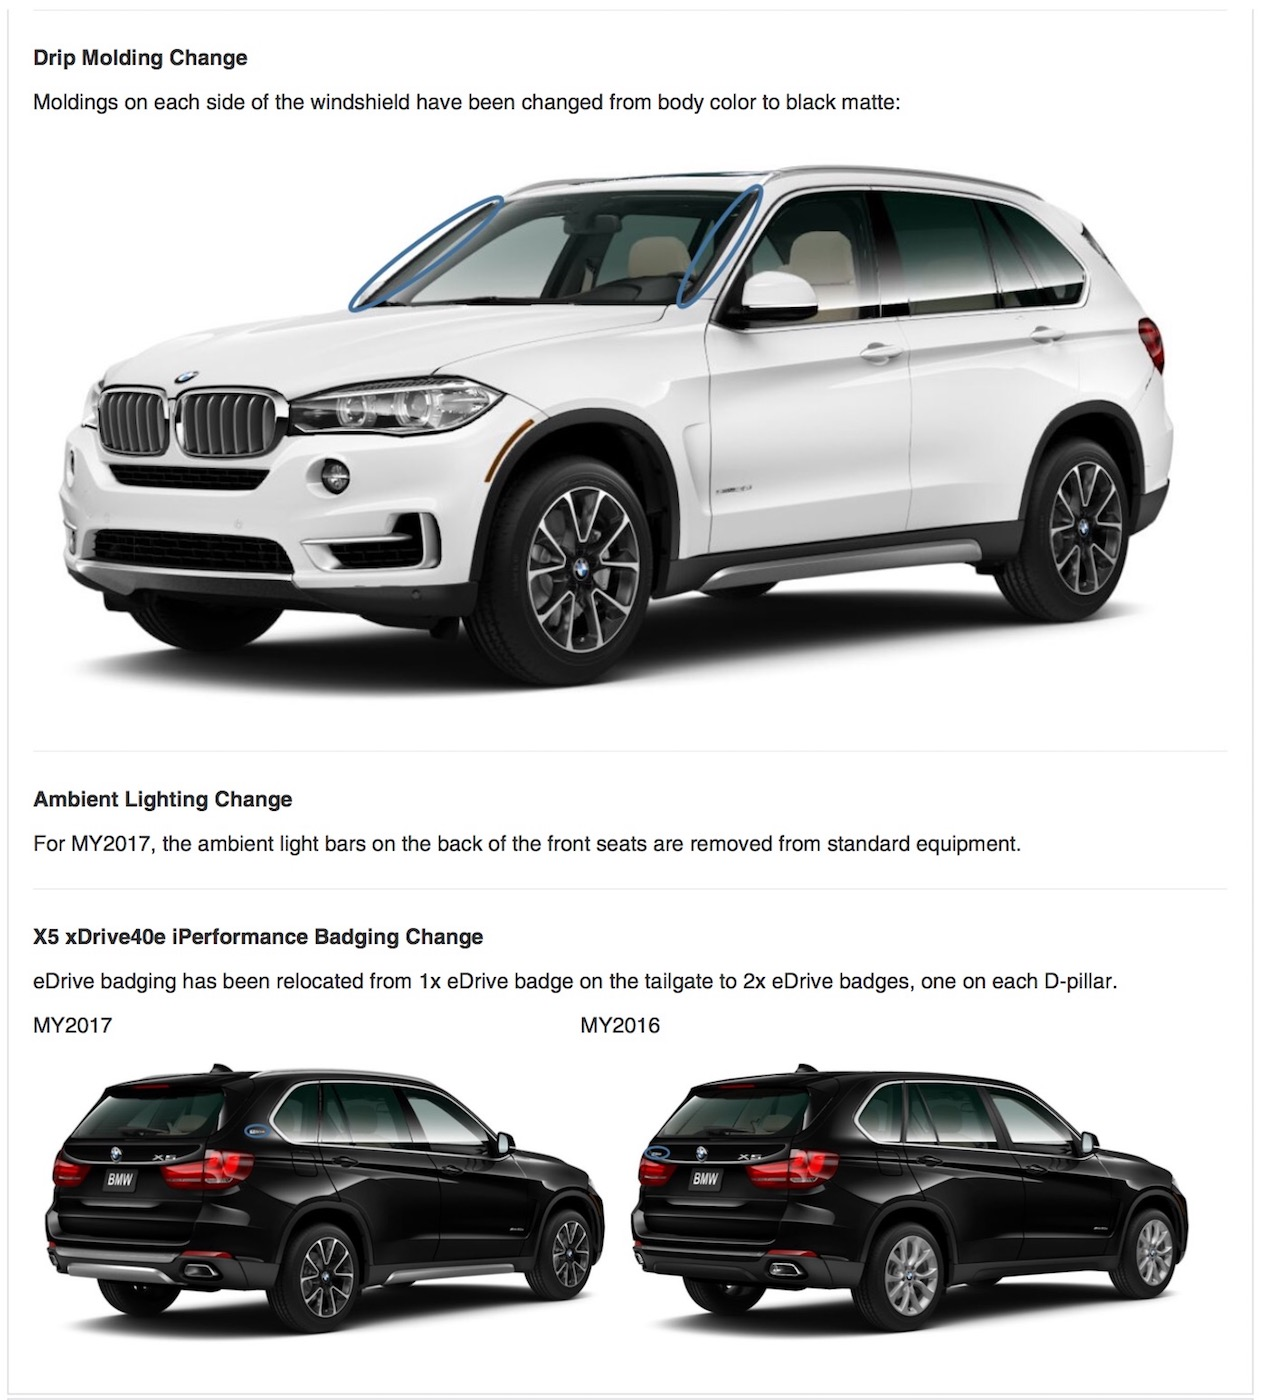 2017 bmw x5 and x6 standard and optional equipment changes. Black Bedroom Furniture Sets. Home Design Ideas